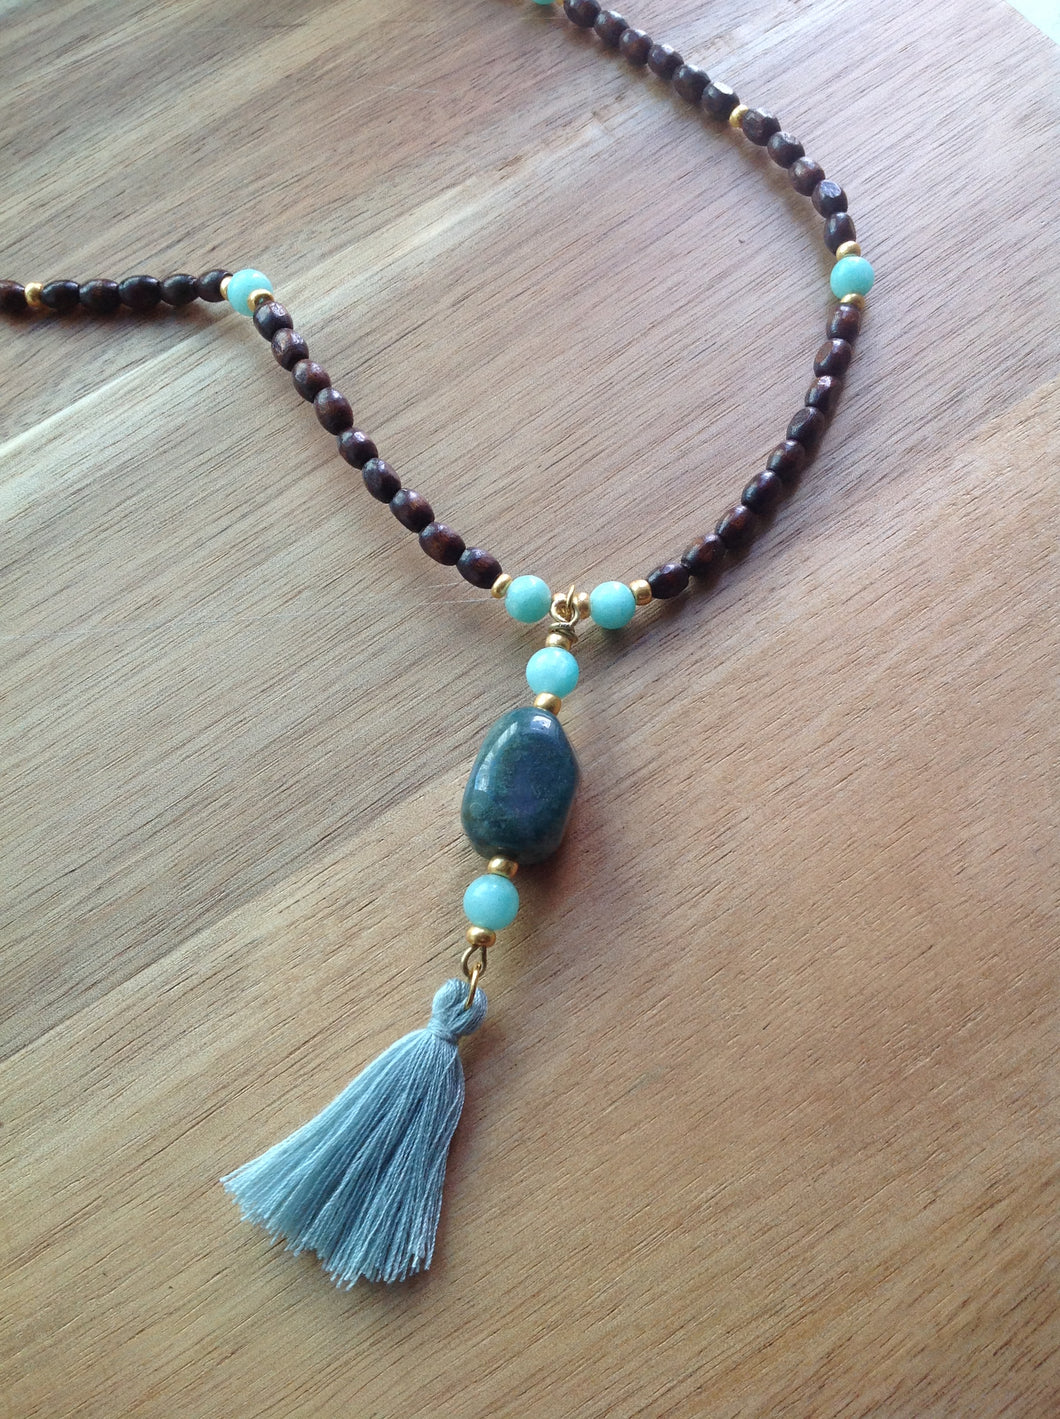 Beaded necklace - wood, turquoise Jade, gold beads, green Jasper and grey tassel pendant - eDgE dEsiGn London